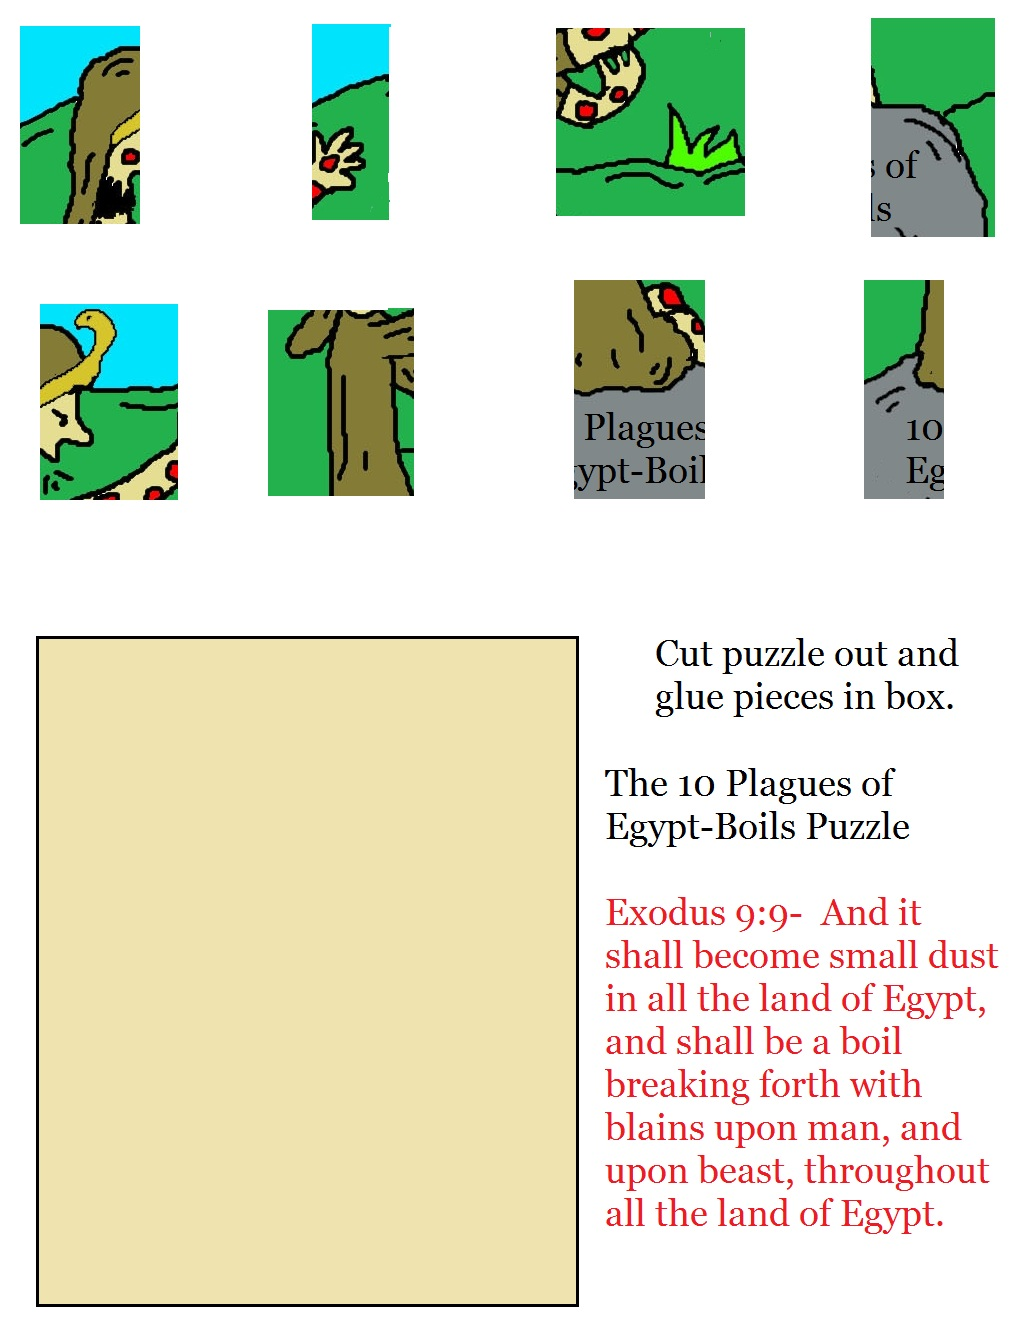 The 10 Plagues of Egypt Boils and